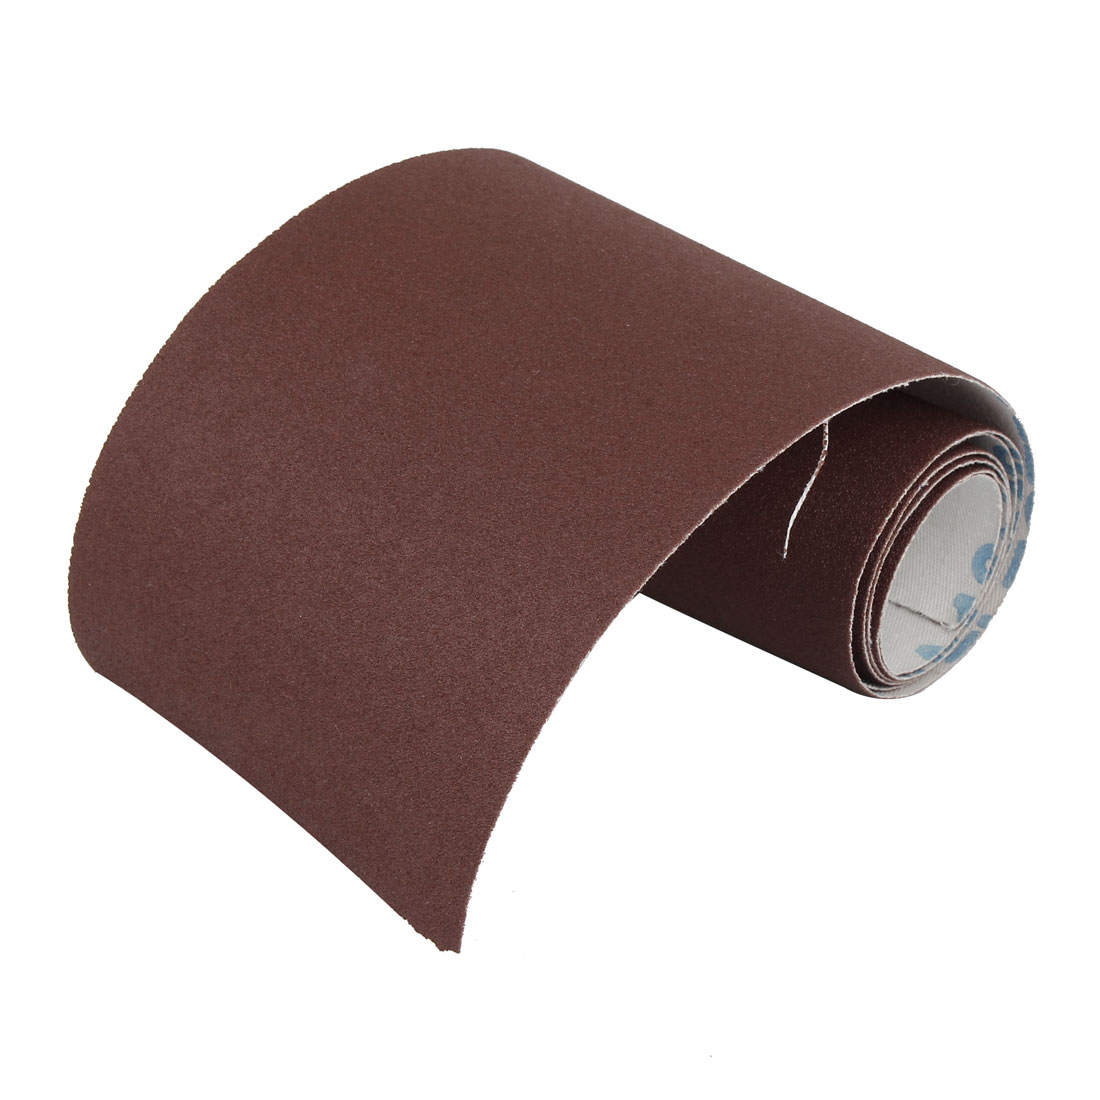 100cm x 10cm 150 Grit Abrasive Sheet Sanding Sandpaper Buffing Tool Dark Brown